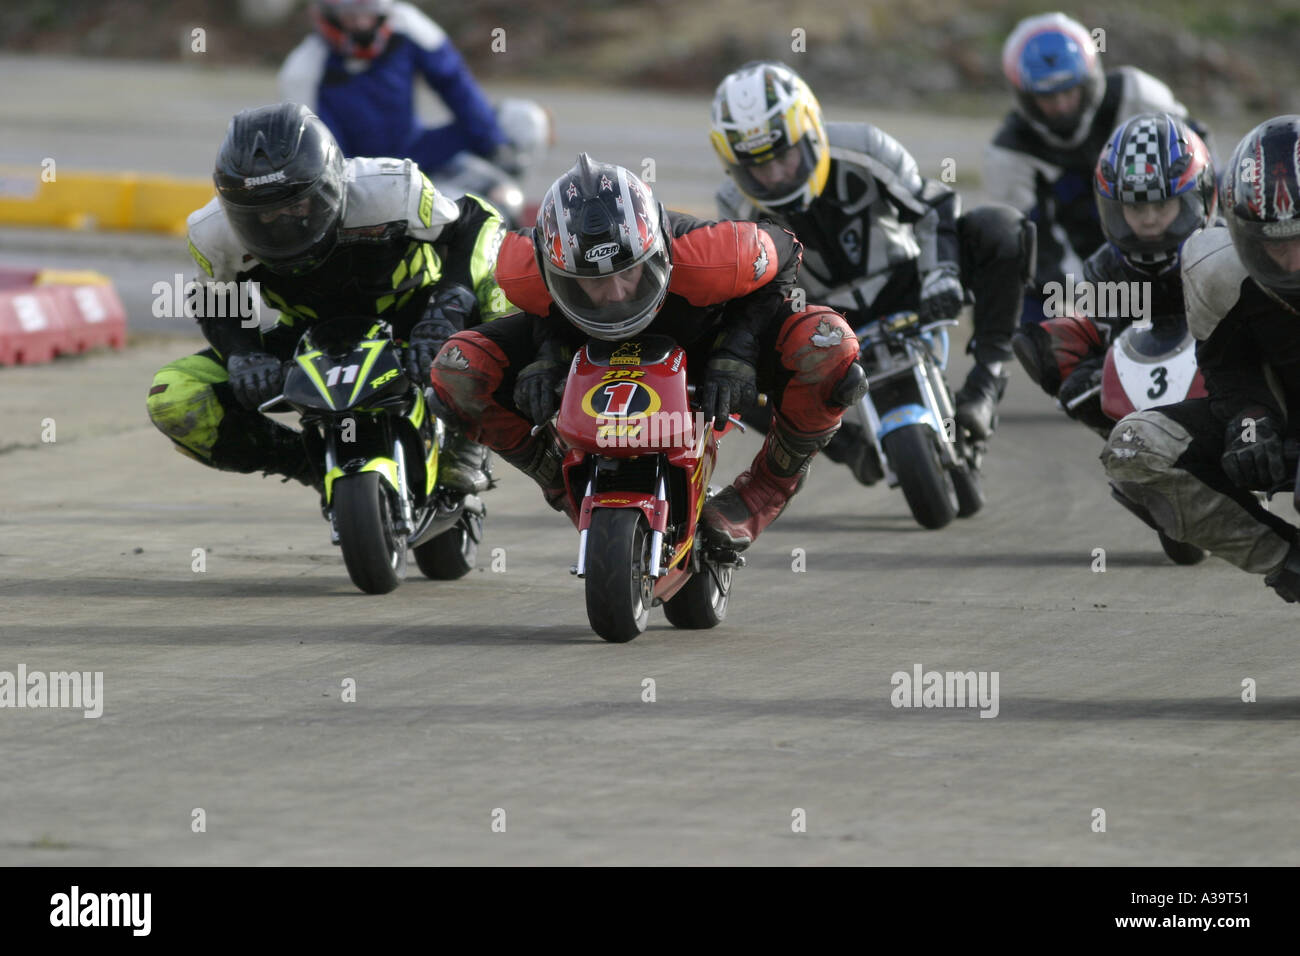 Senior minibike competitors crouched down heading for the line at demonstration Motorcycle and motorsport show - Stock Image